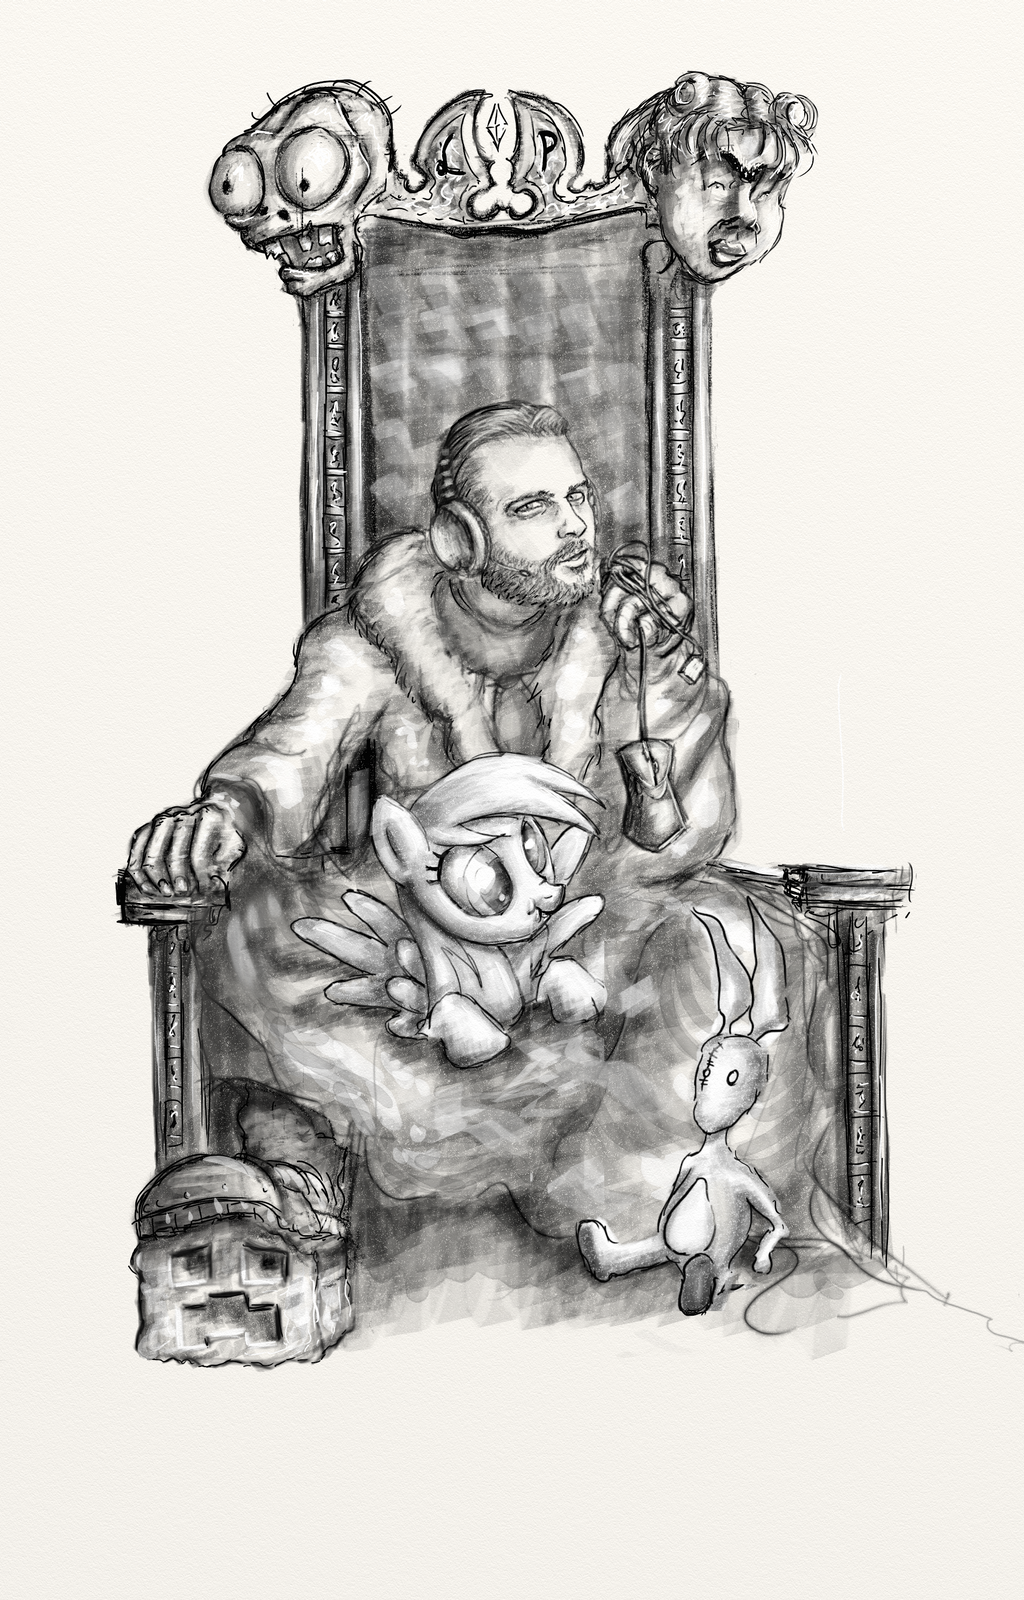 Evil King On Throne Drawing | www.imgkid.com - The Image ...